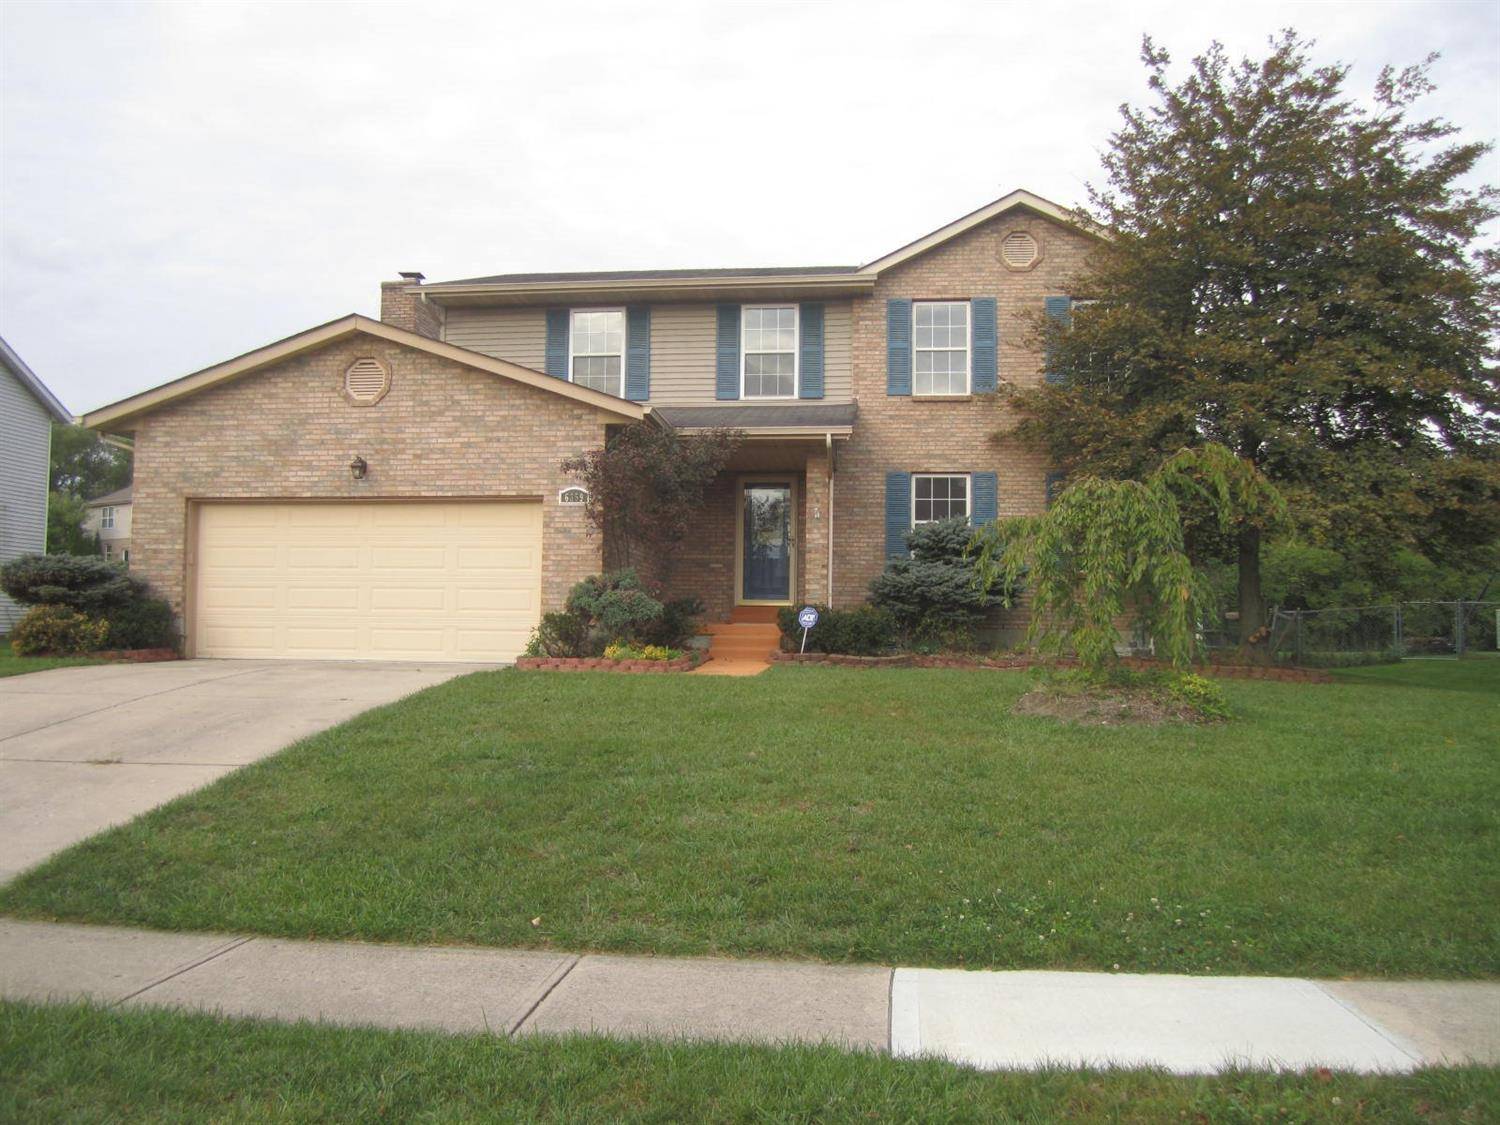 6359 Jamesfield Ct Fairfield, OH